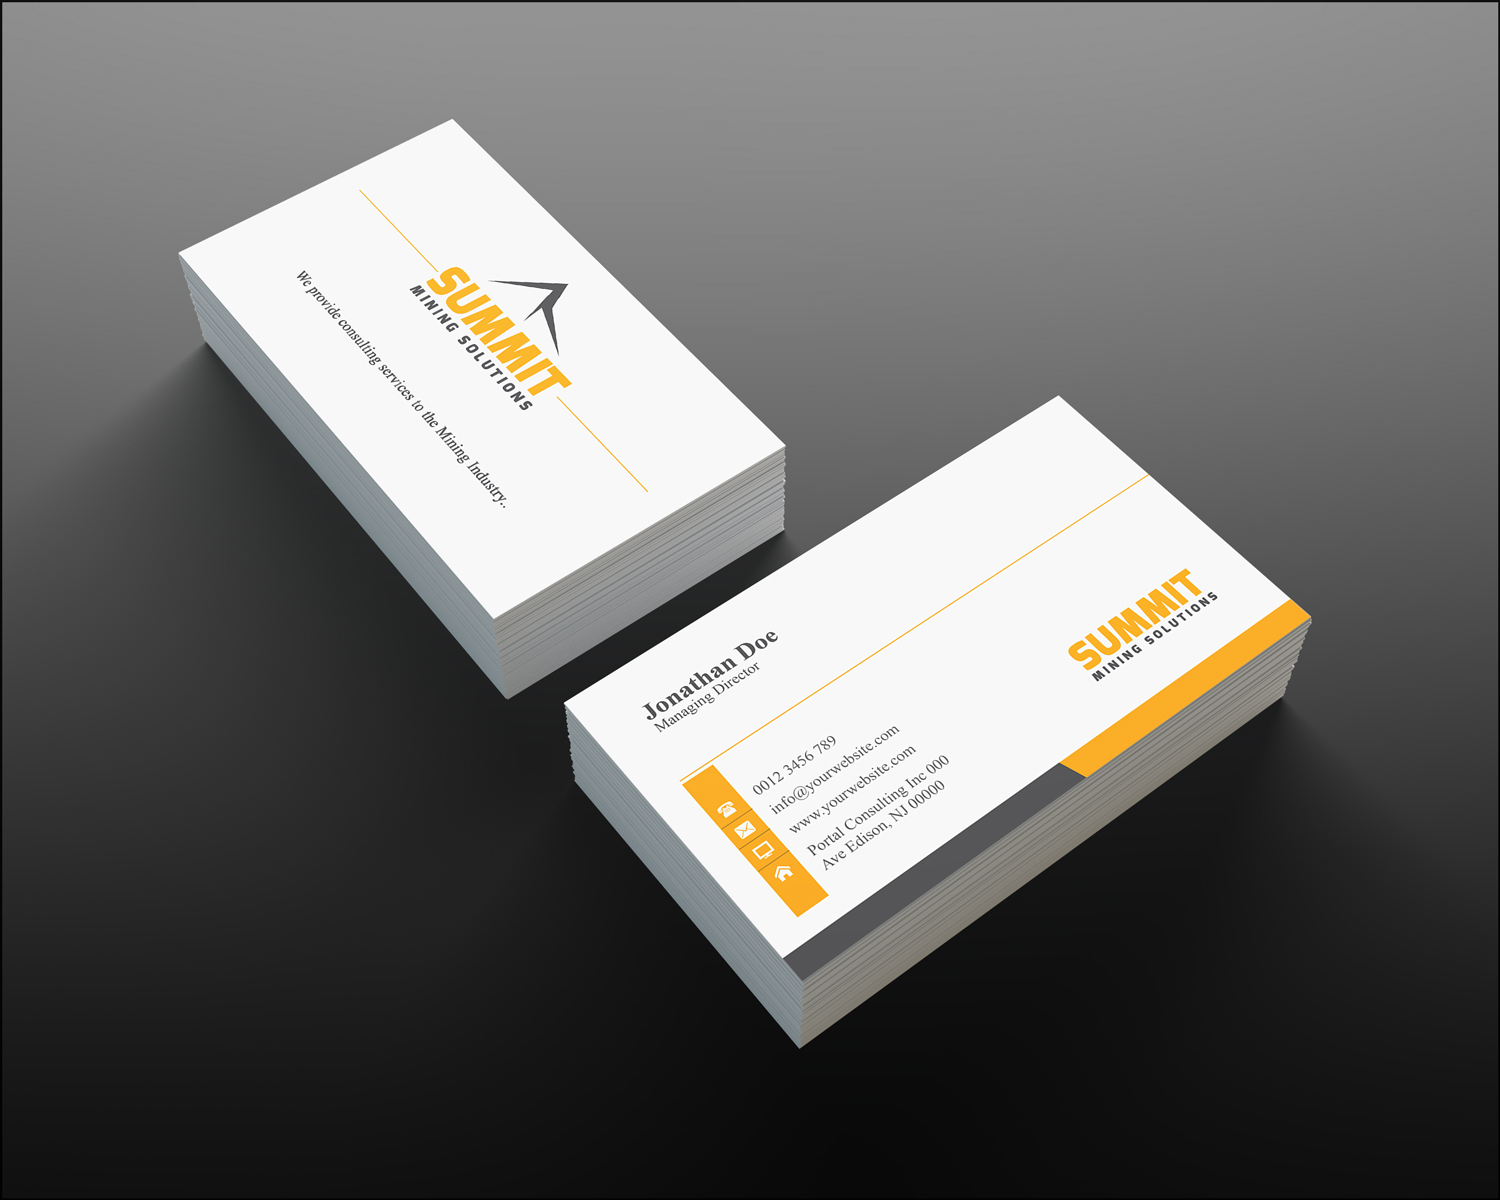 Mining business card design for a company by creation lanka design business card design by creation lanka for this project design 4675252 reheart Image collections